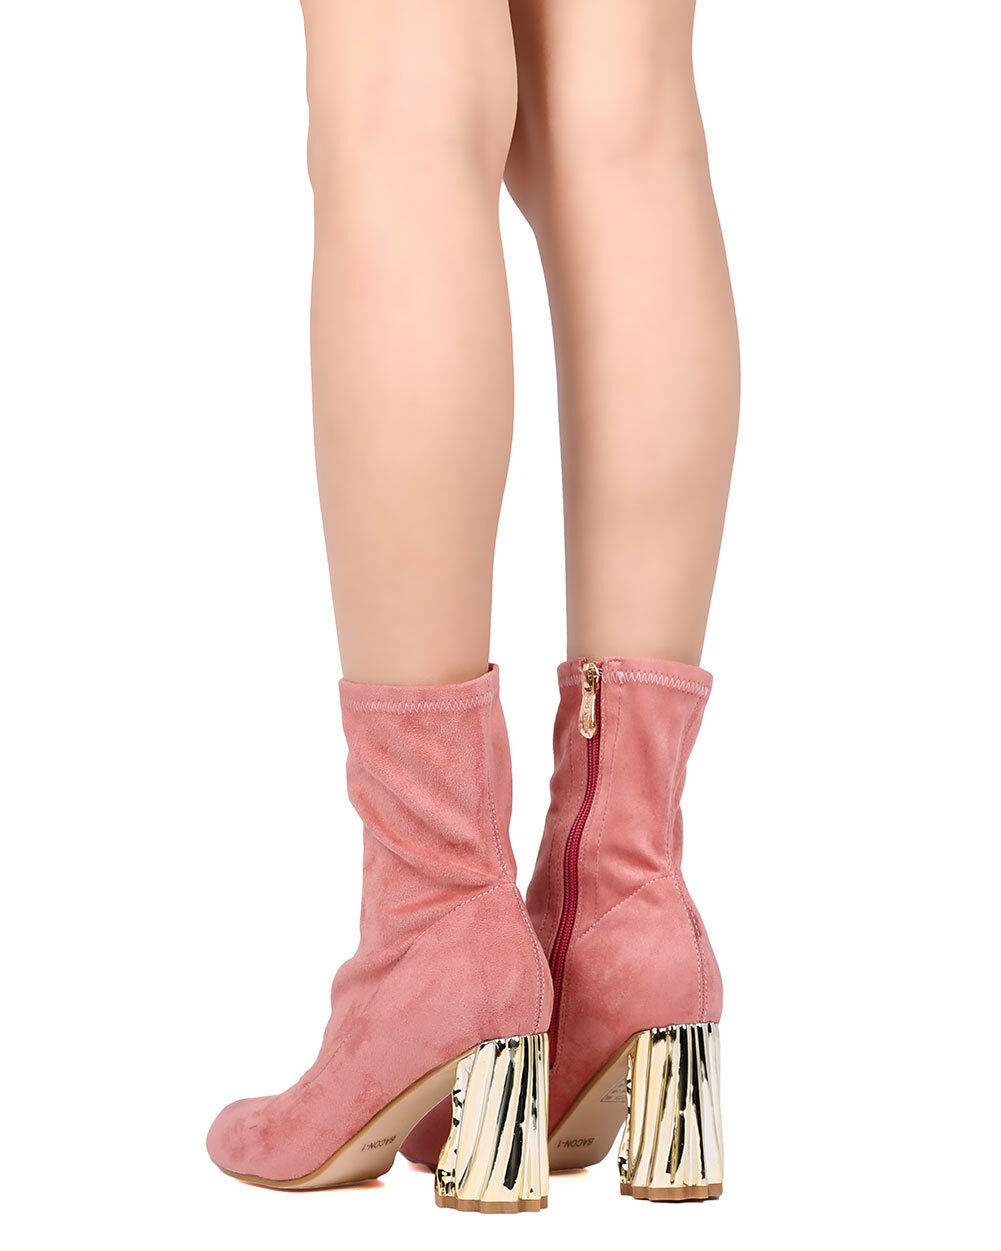 New Women Cape Robbin Bacon-1 Fabric Pointy Toe Structural Chunky Heel Bootie